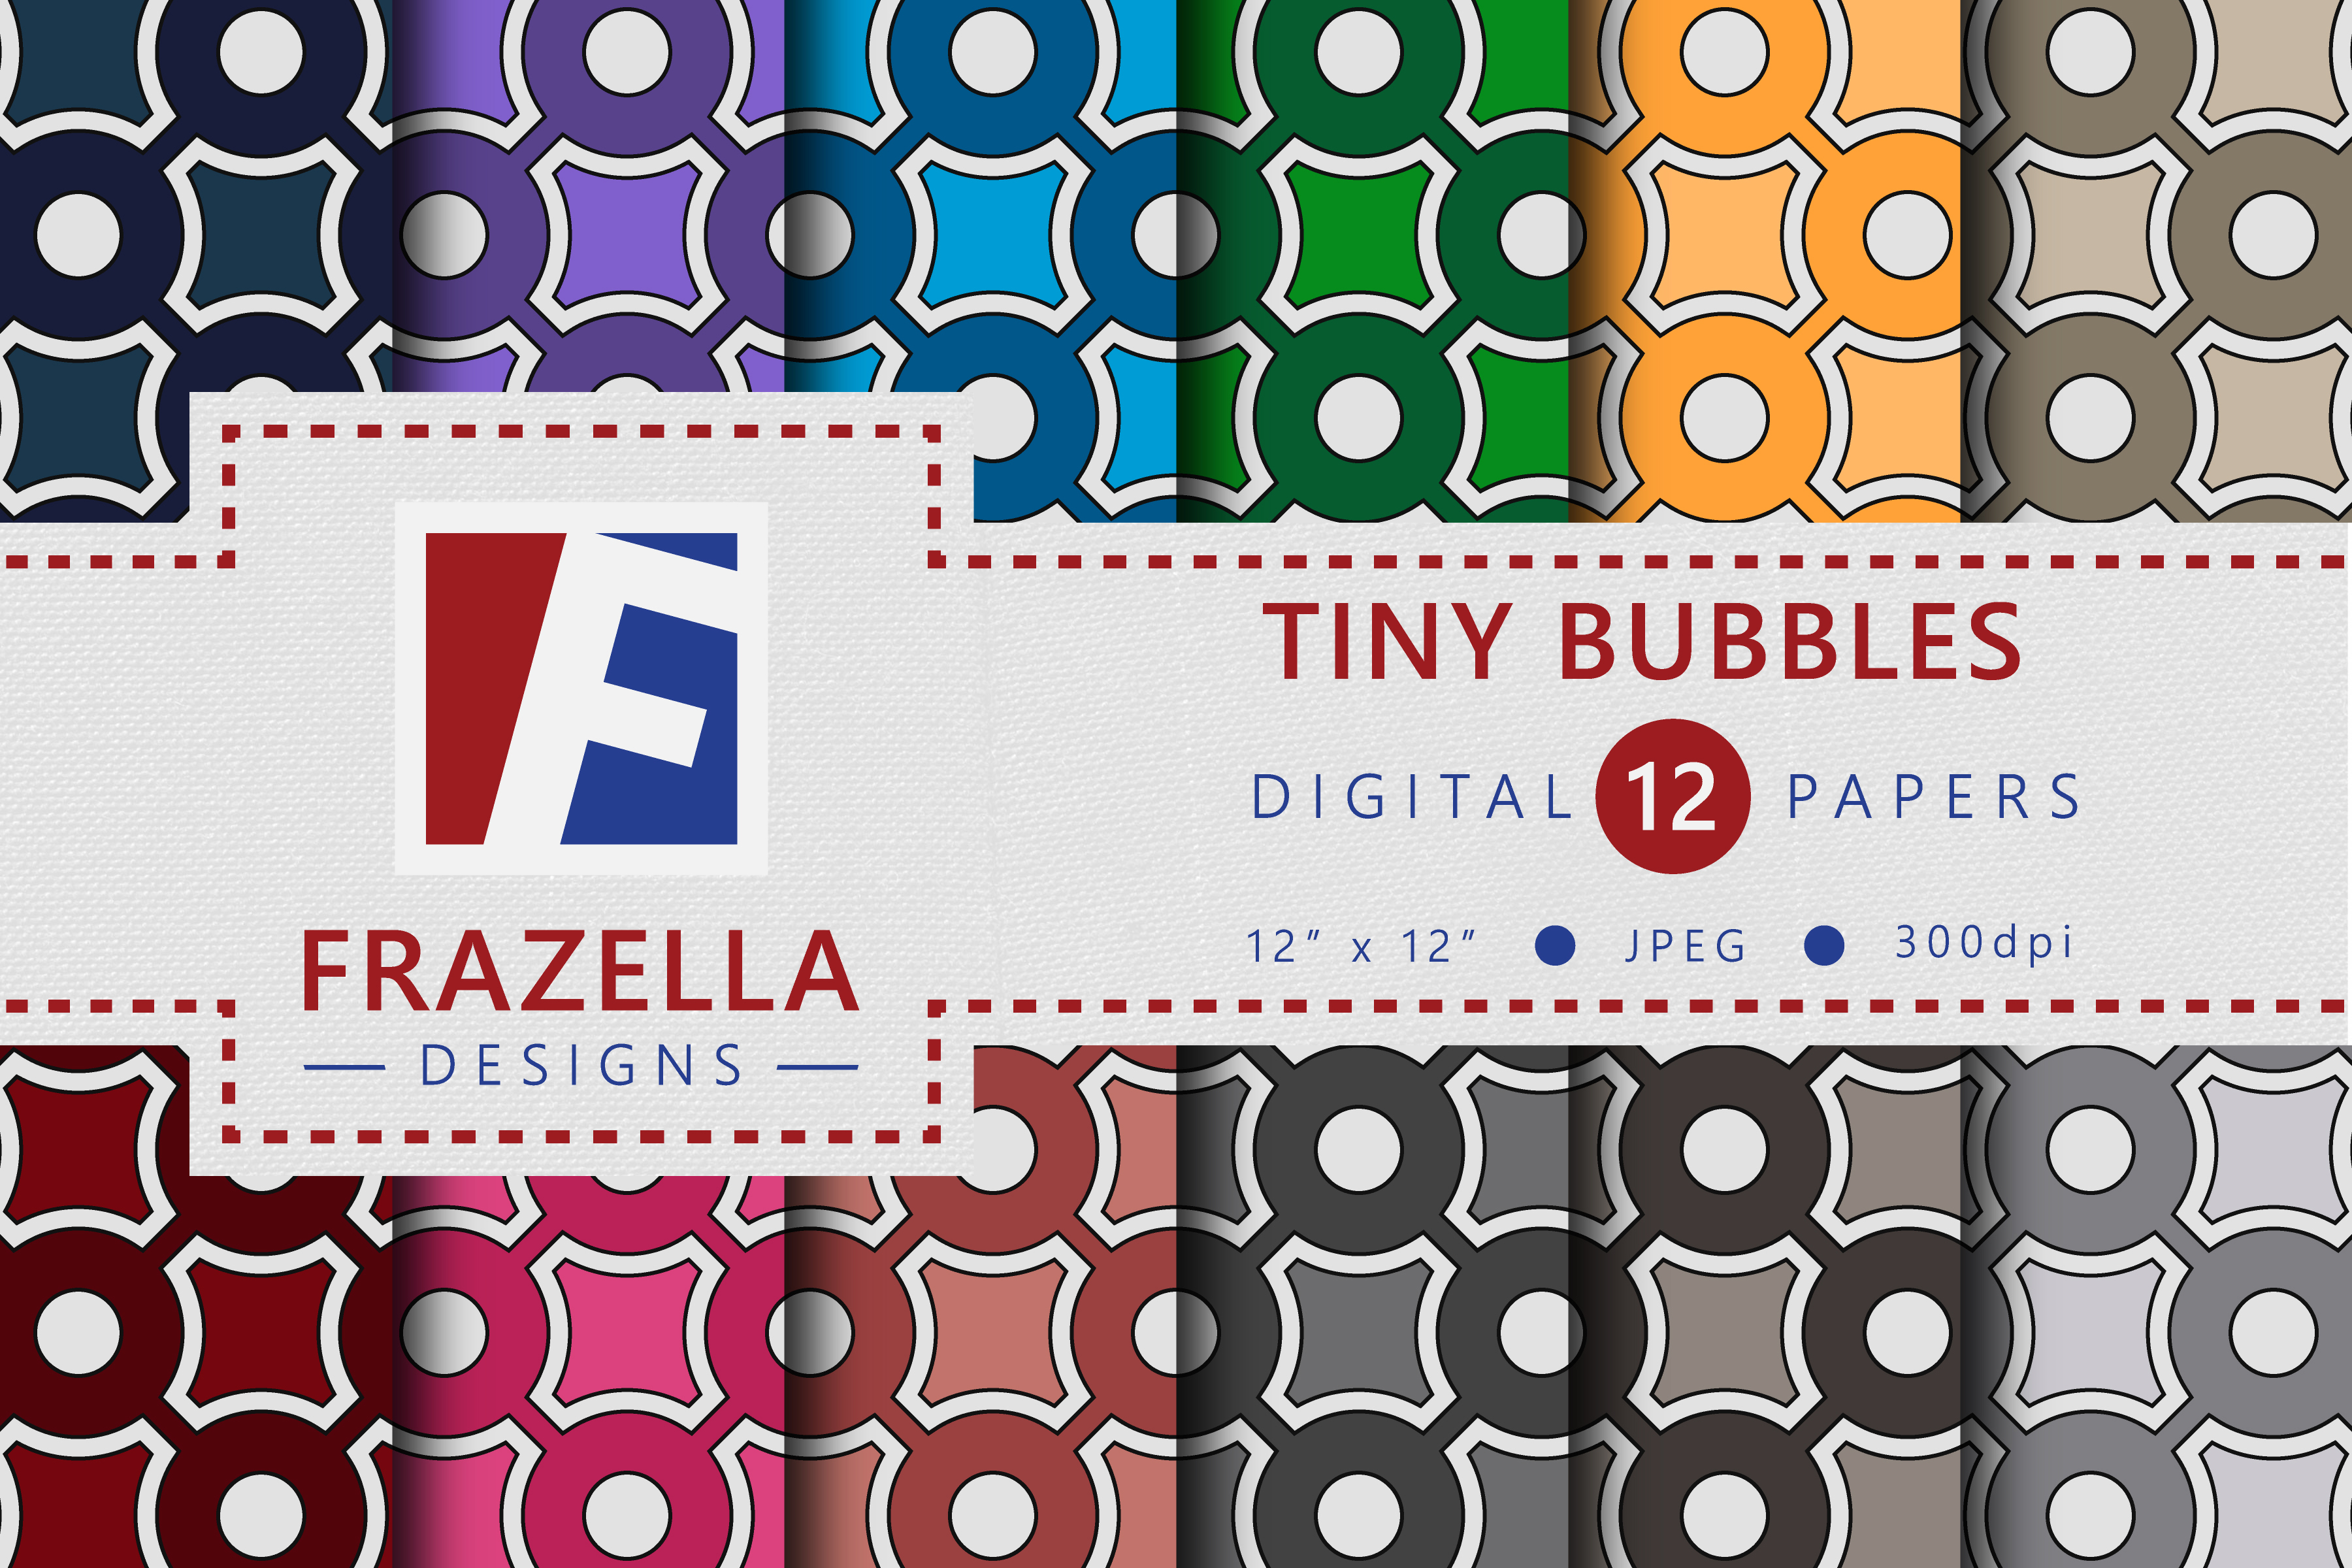 Download Free The Colorful Tiny Bubbles Digital Paper Collection Graphic By for Cricut Explore, Silhouette and other cutting machines.